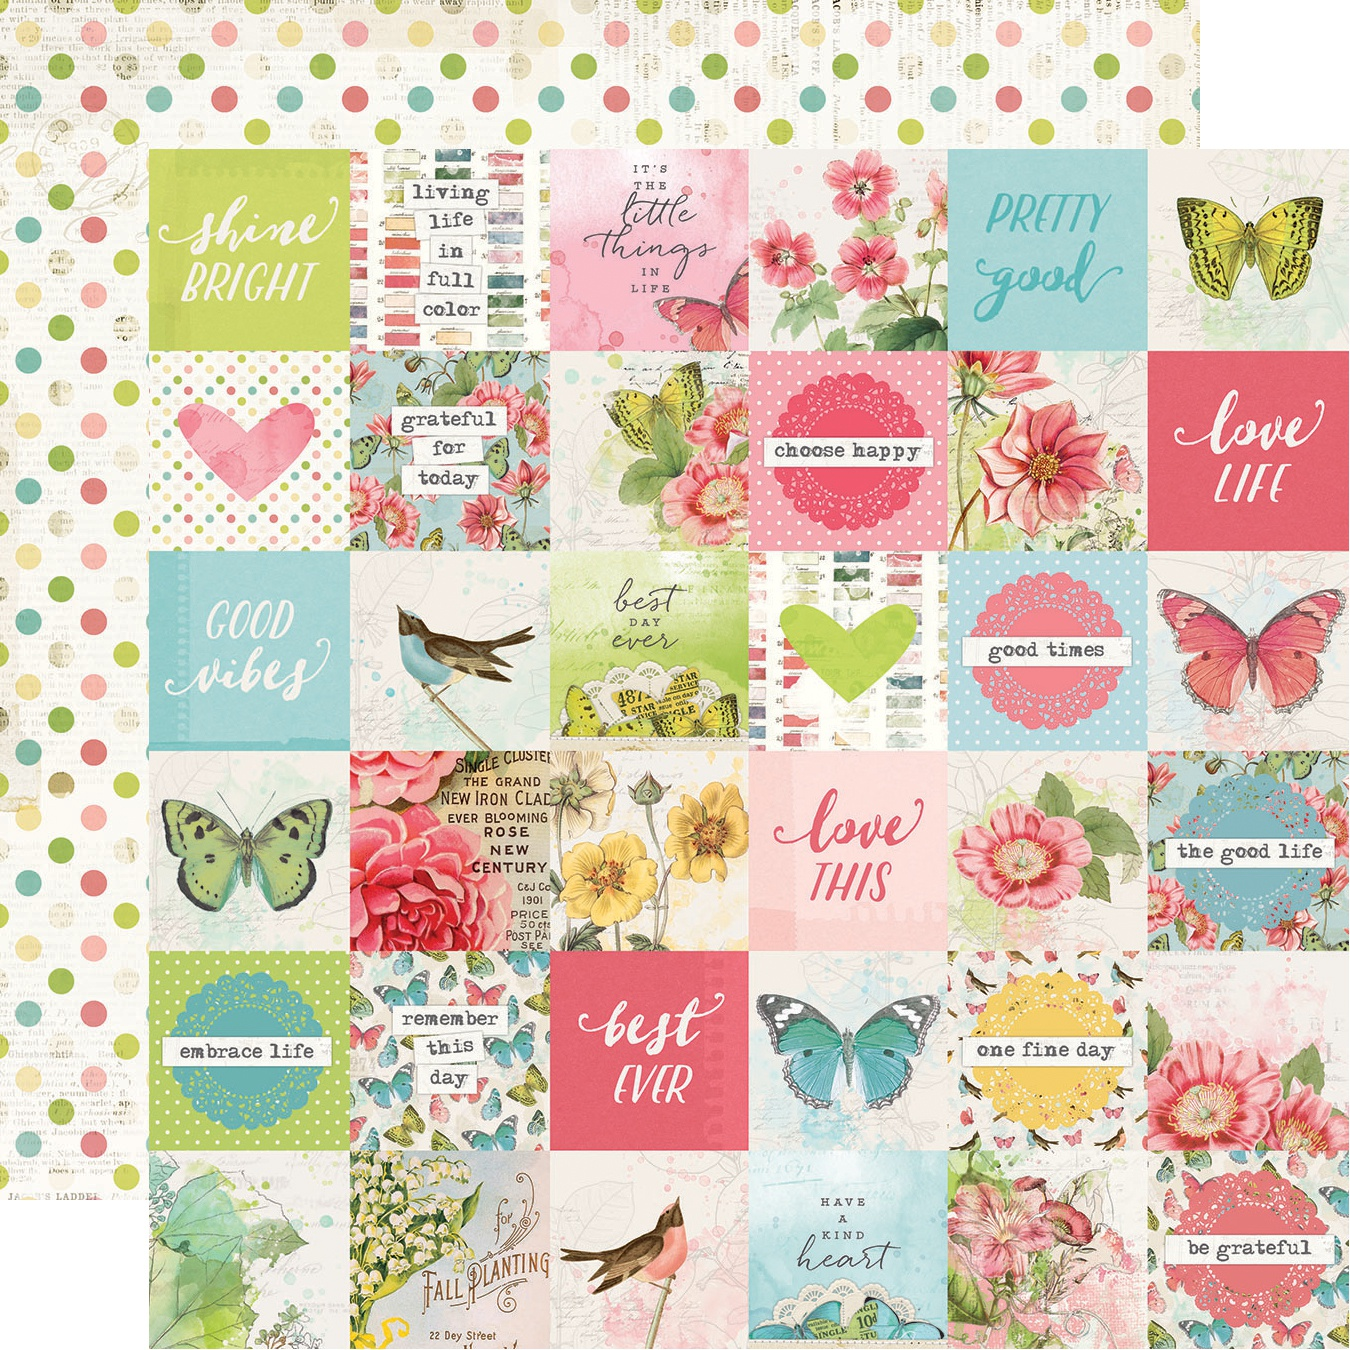 Simple Vintage Botanicals Double-Sided Cardstock 12X12-2X2 Elements